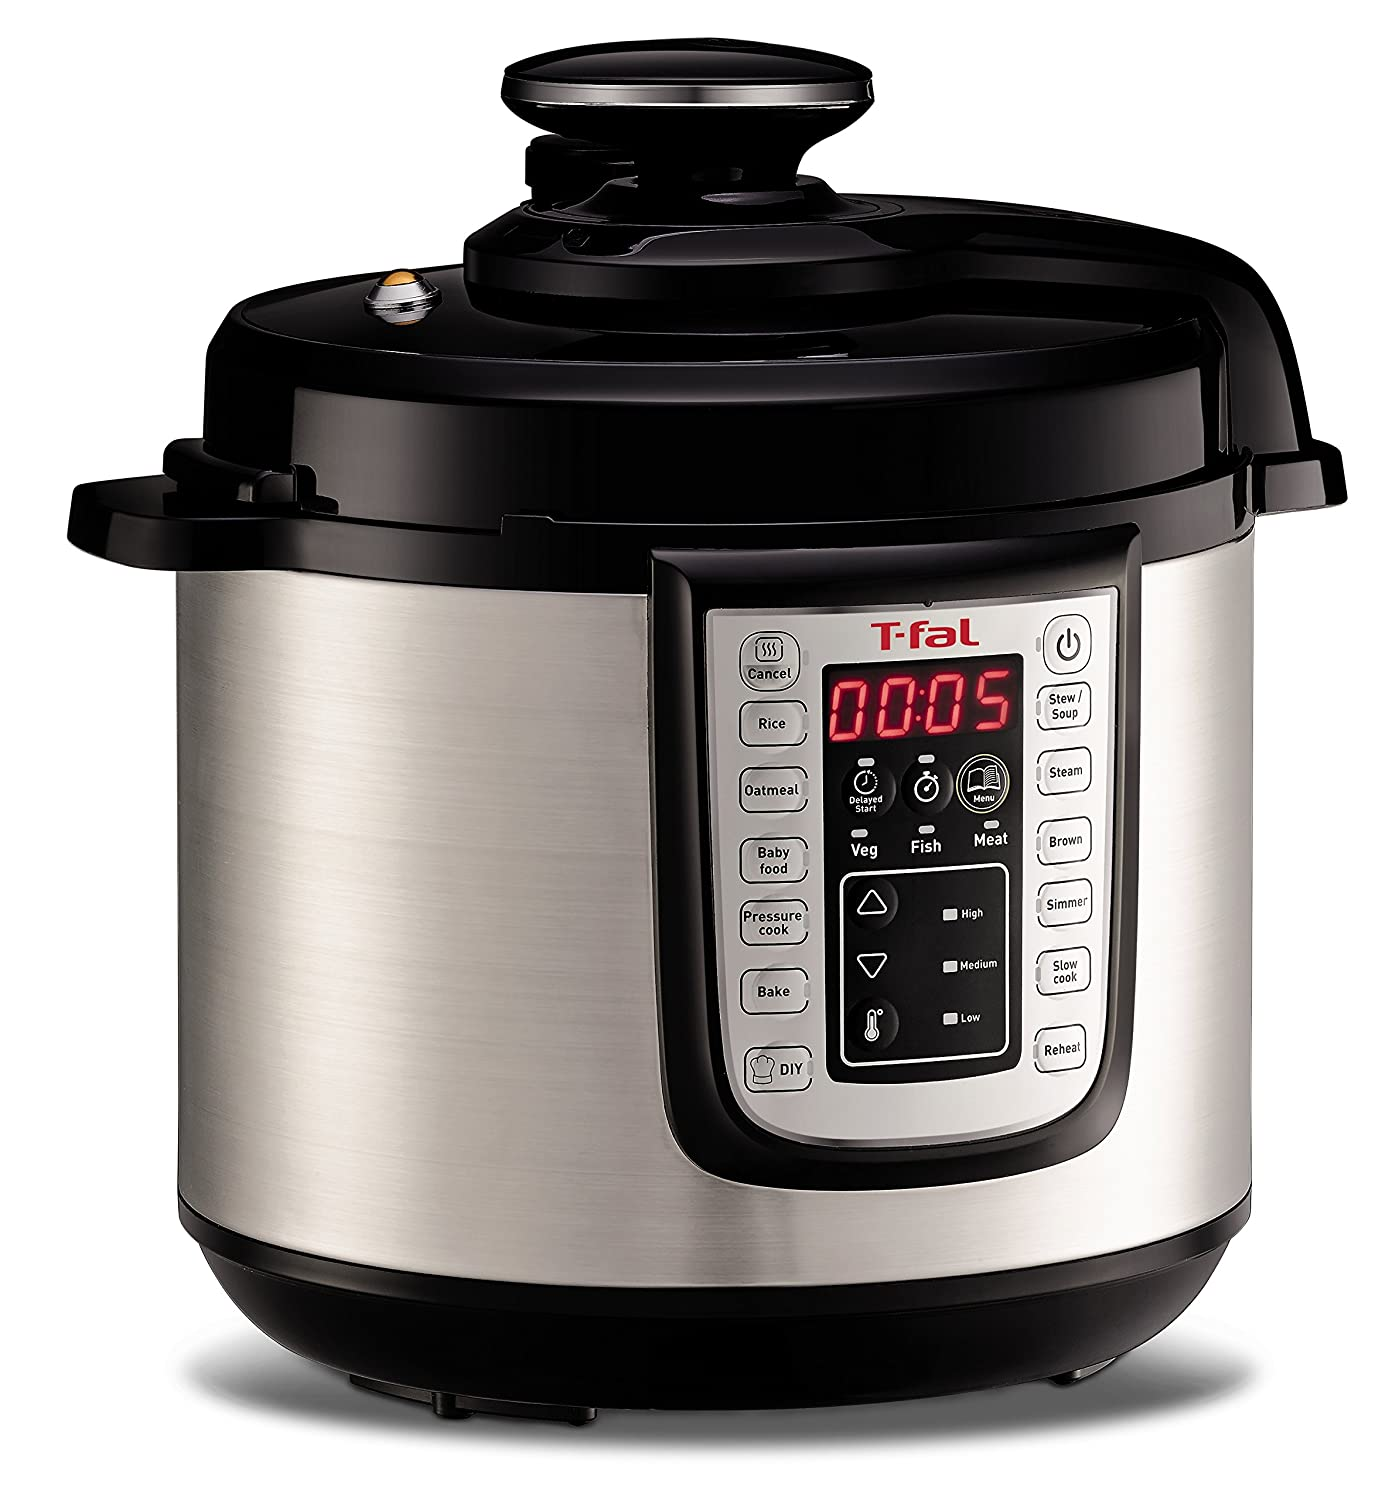 t fal electric programmable pressure cooker